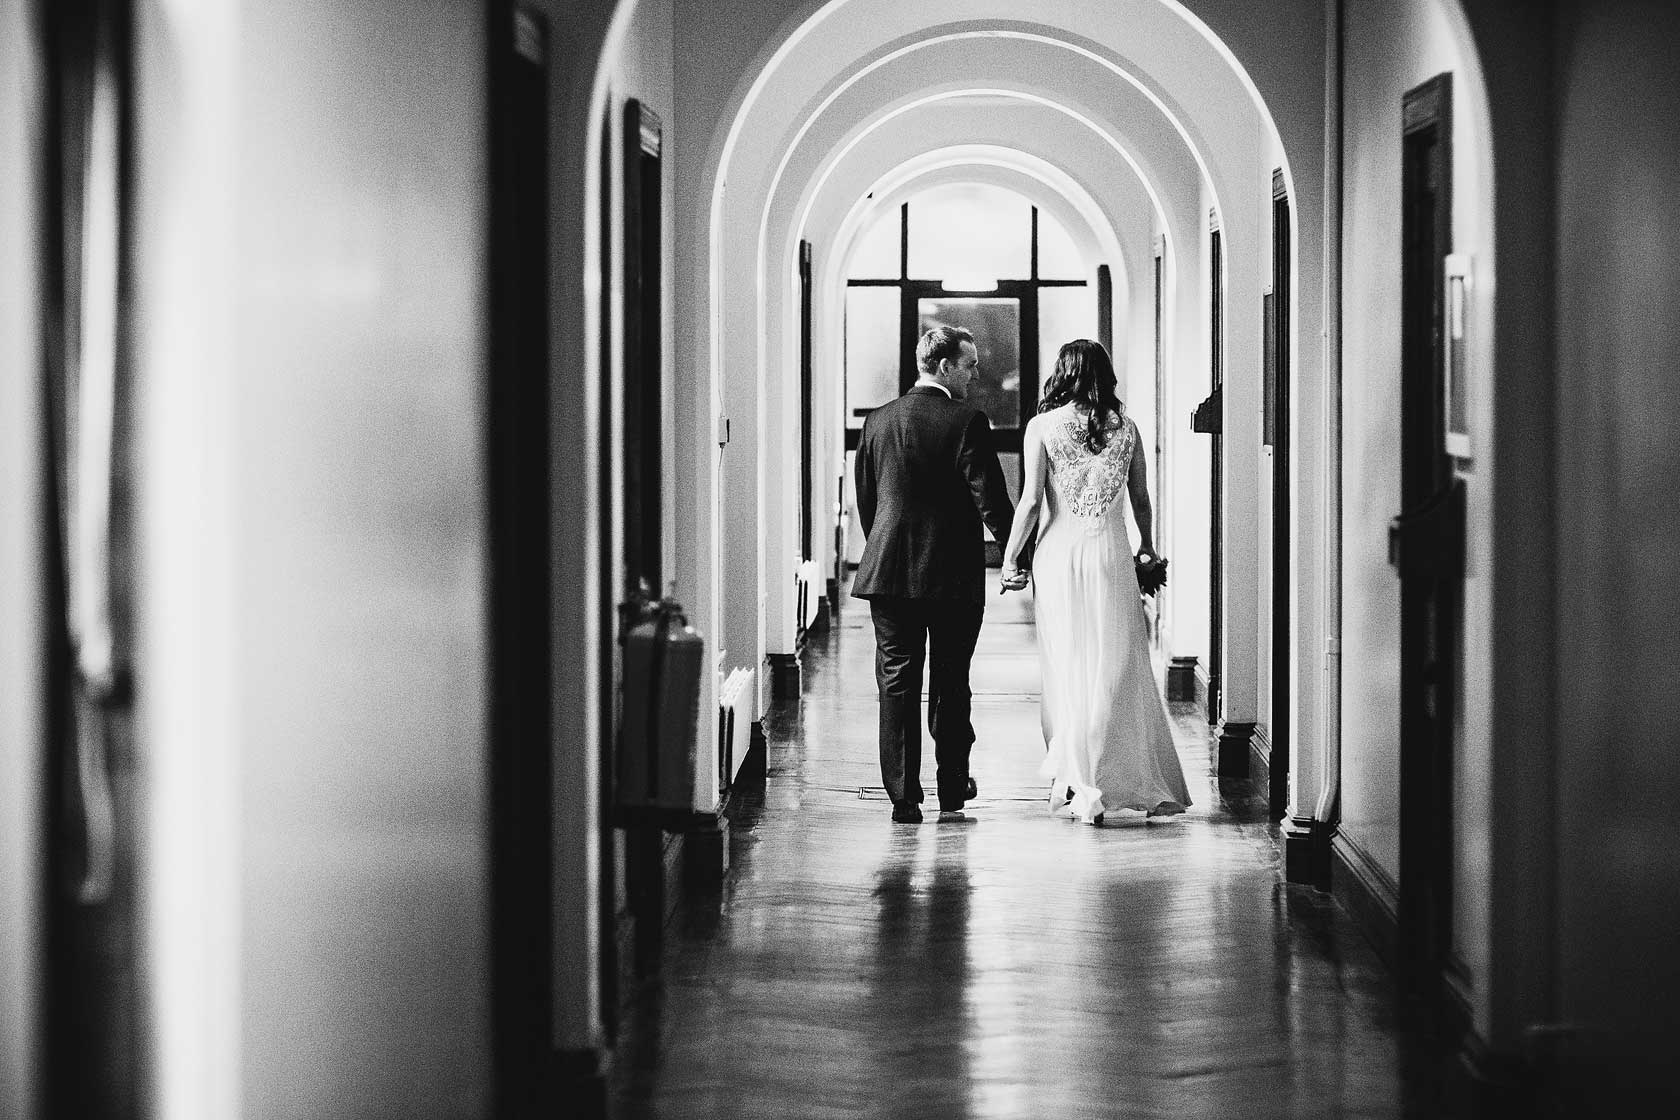 Reportage Wedding Photography at Girton College